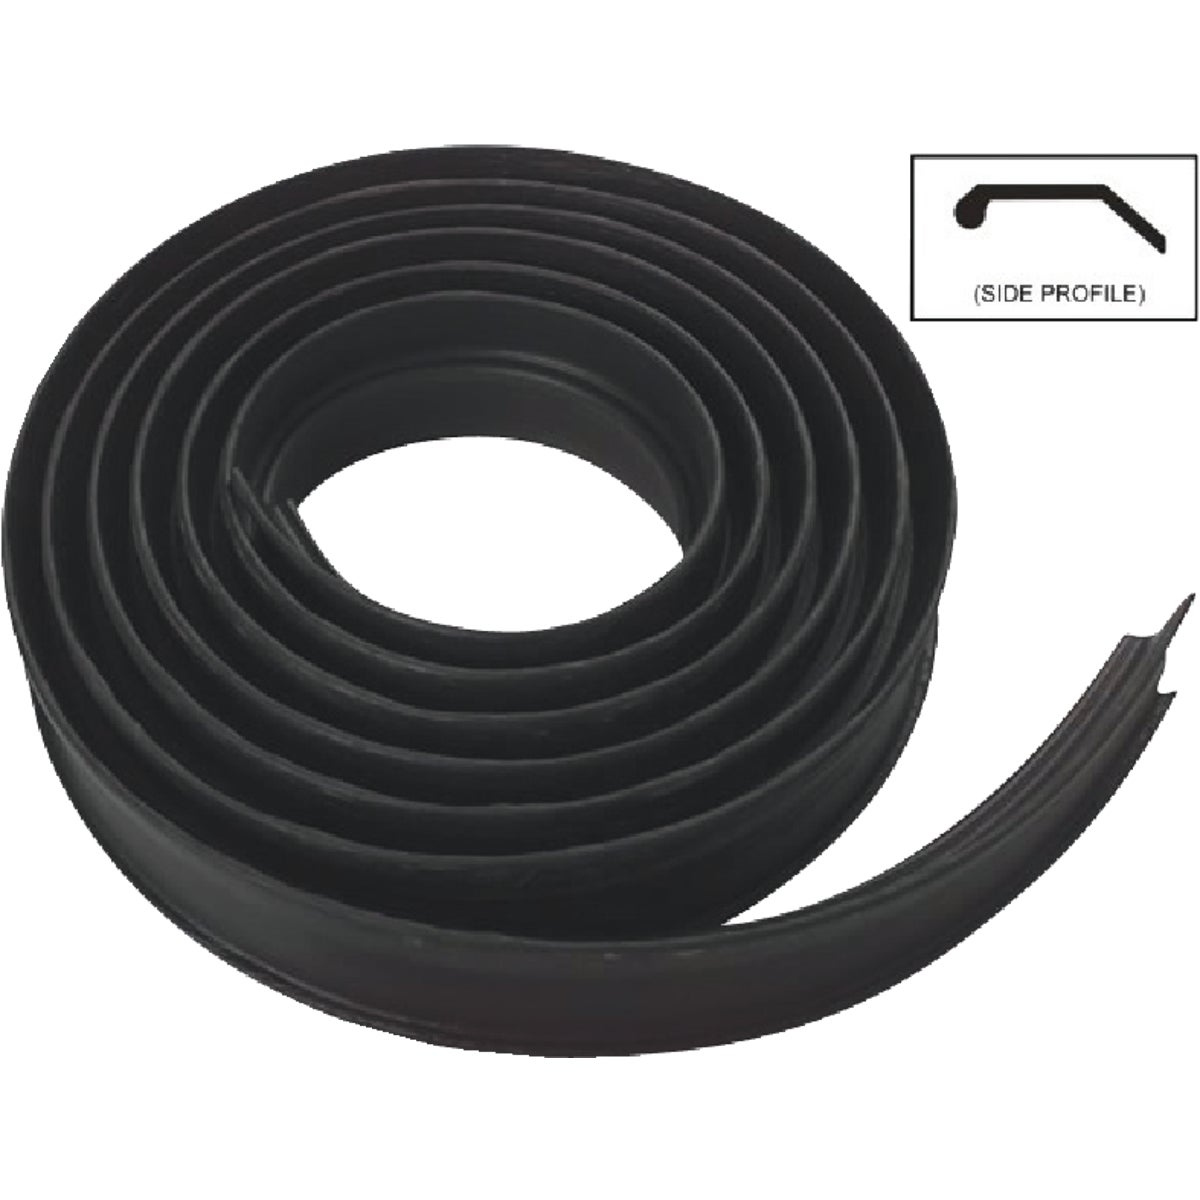 10' BLK WEATHERSTRIPPING - N281279 by National Mfg Co